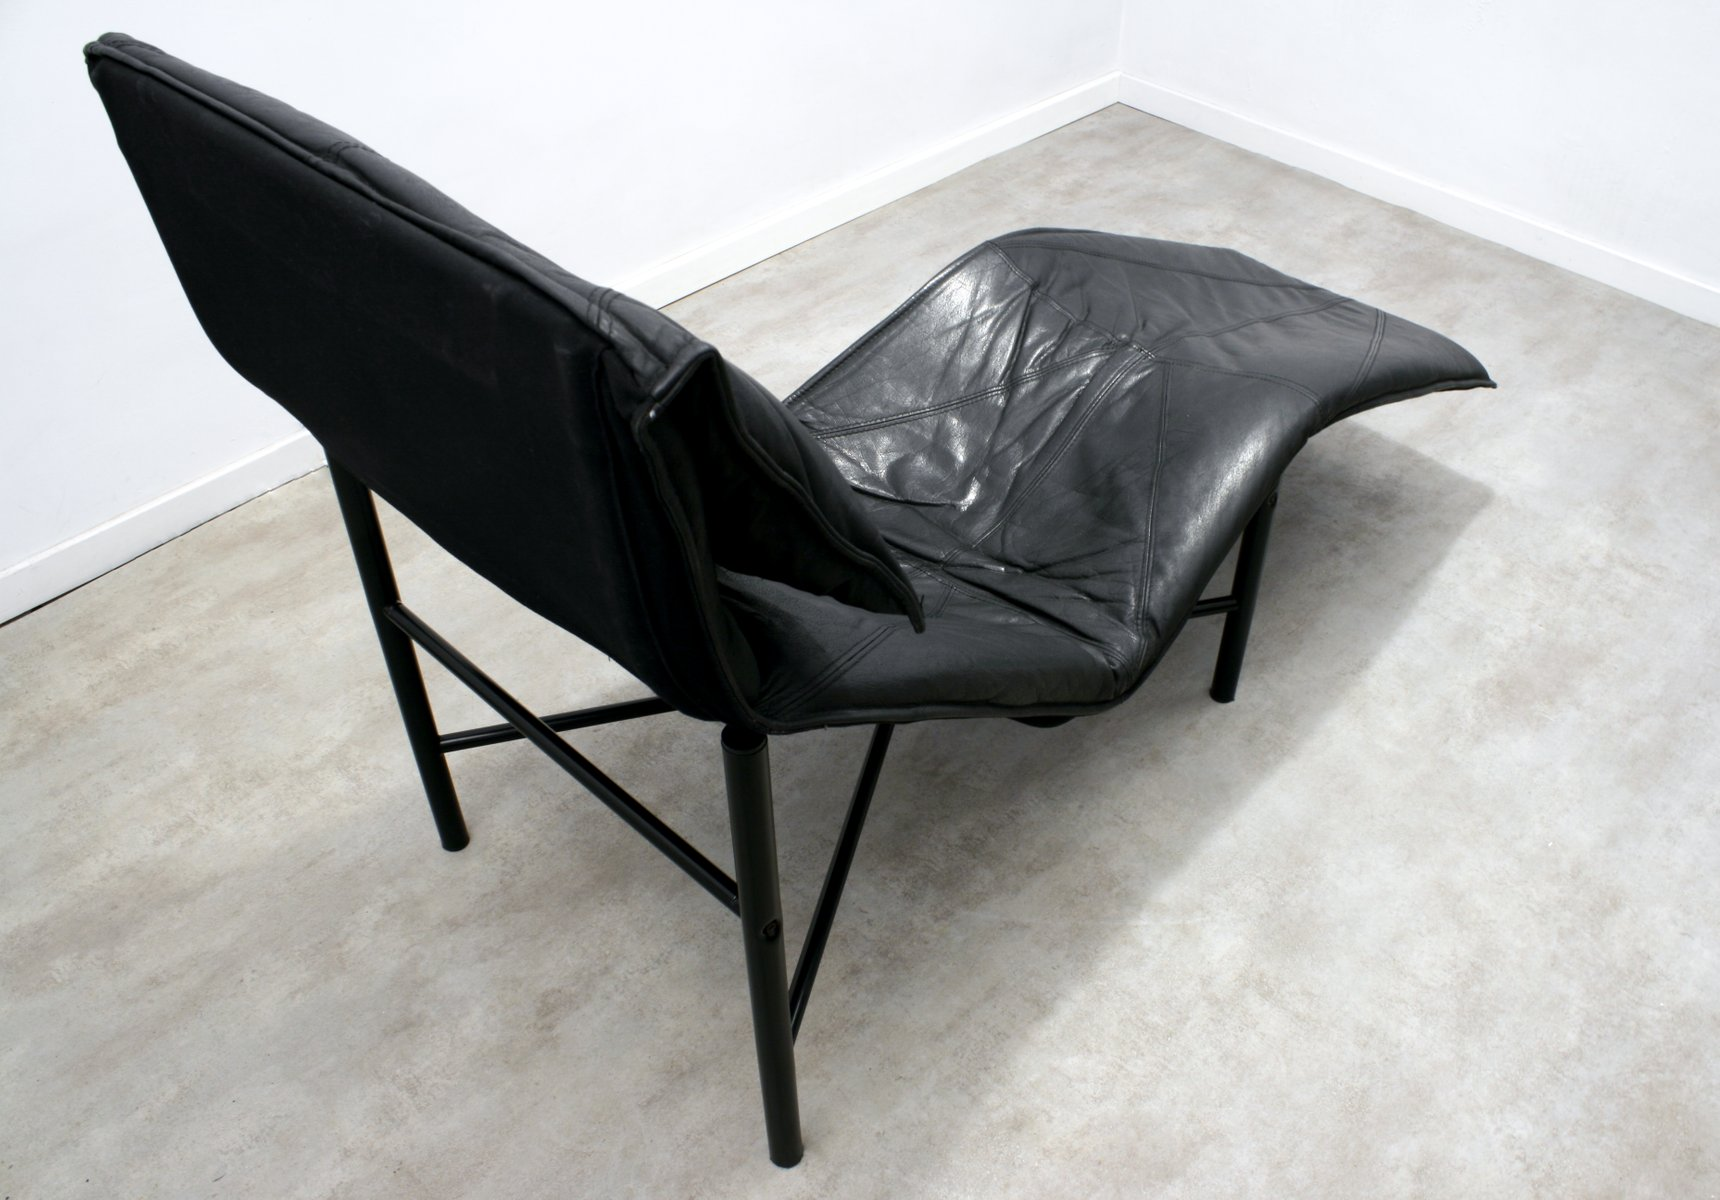 Black leather skye chaise longue by tord bj rklund for for Black leather chaise longue